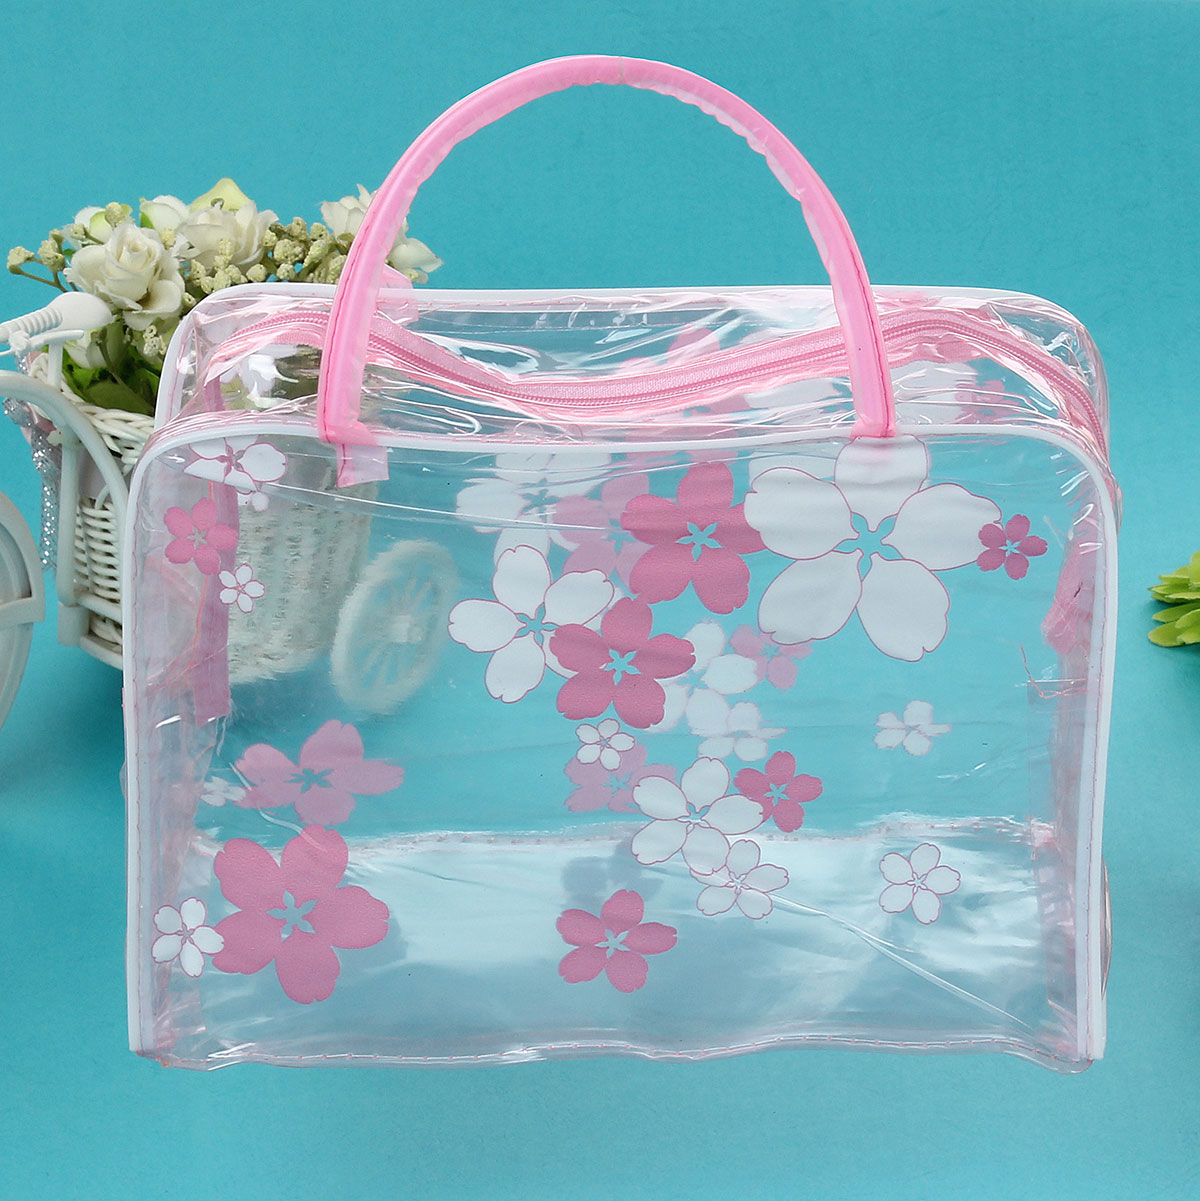 Floral Waterproof Transparent Cosmetic Makeup Wash Bag Toiletry Pouch